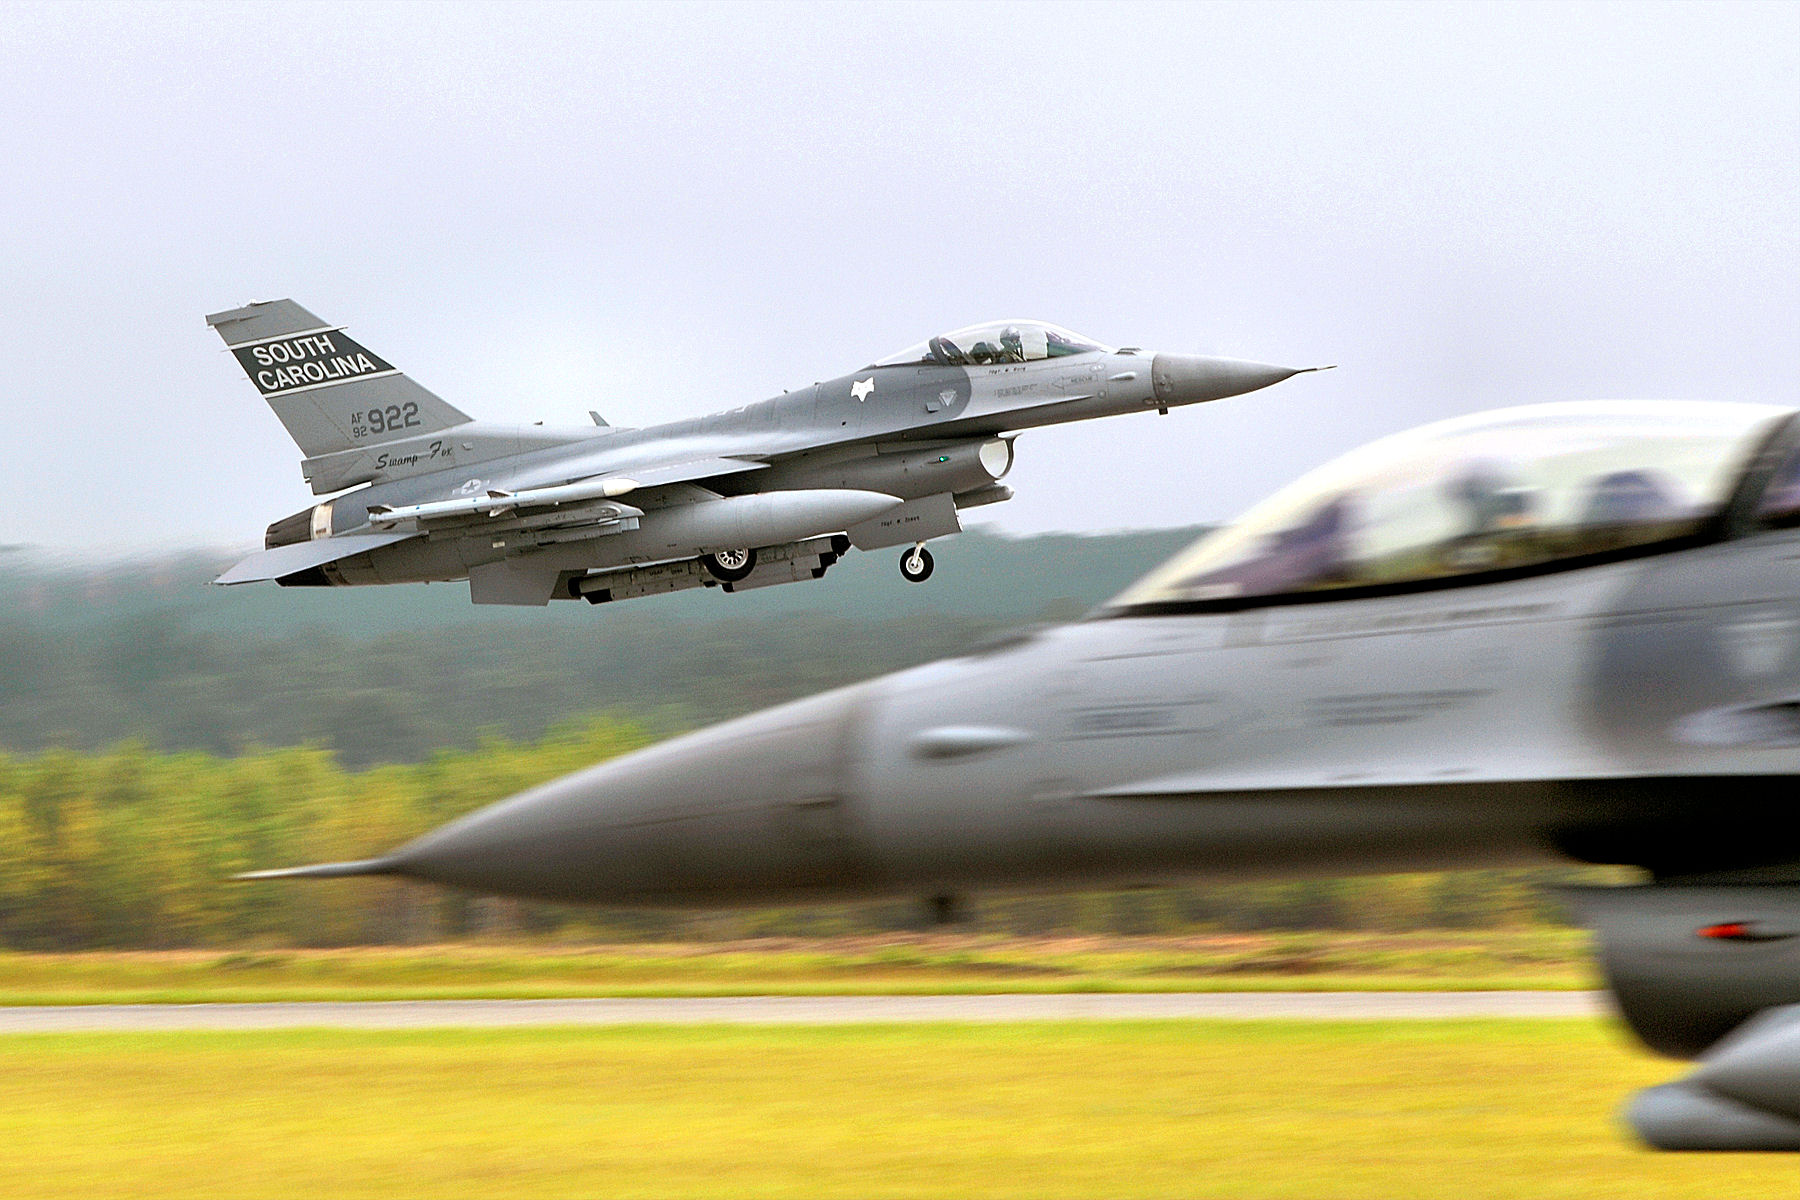 File:169th Fighter Wing - F-16 takeoff jpg - Wikimedia Commons